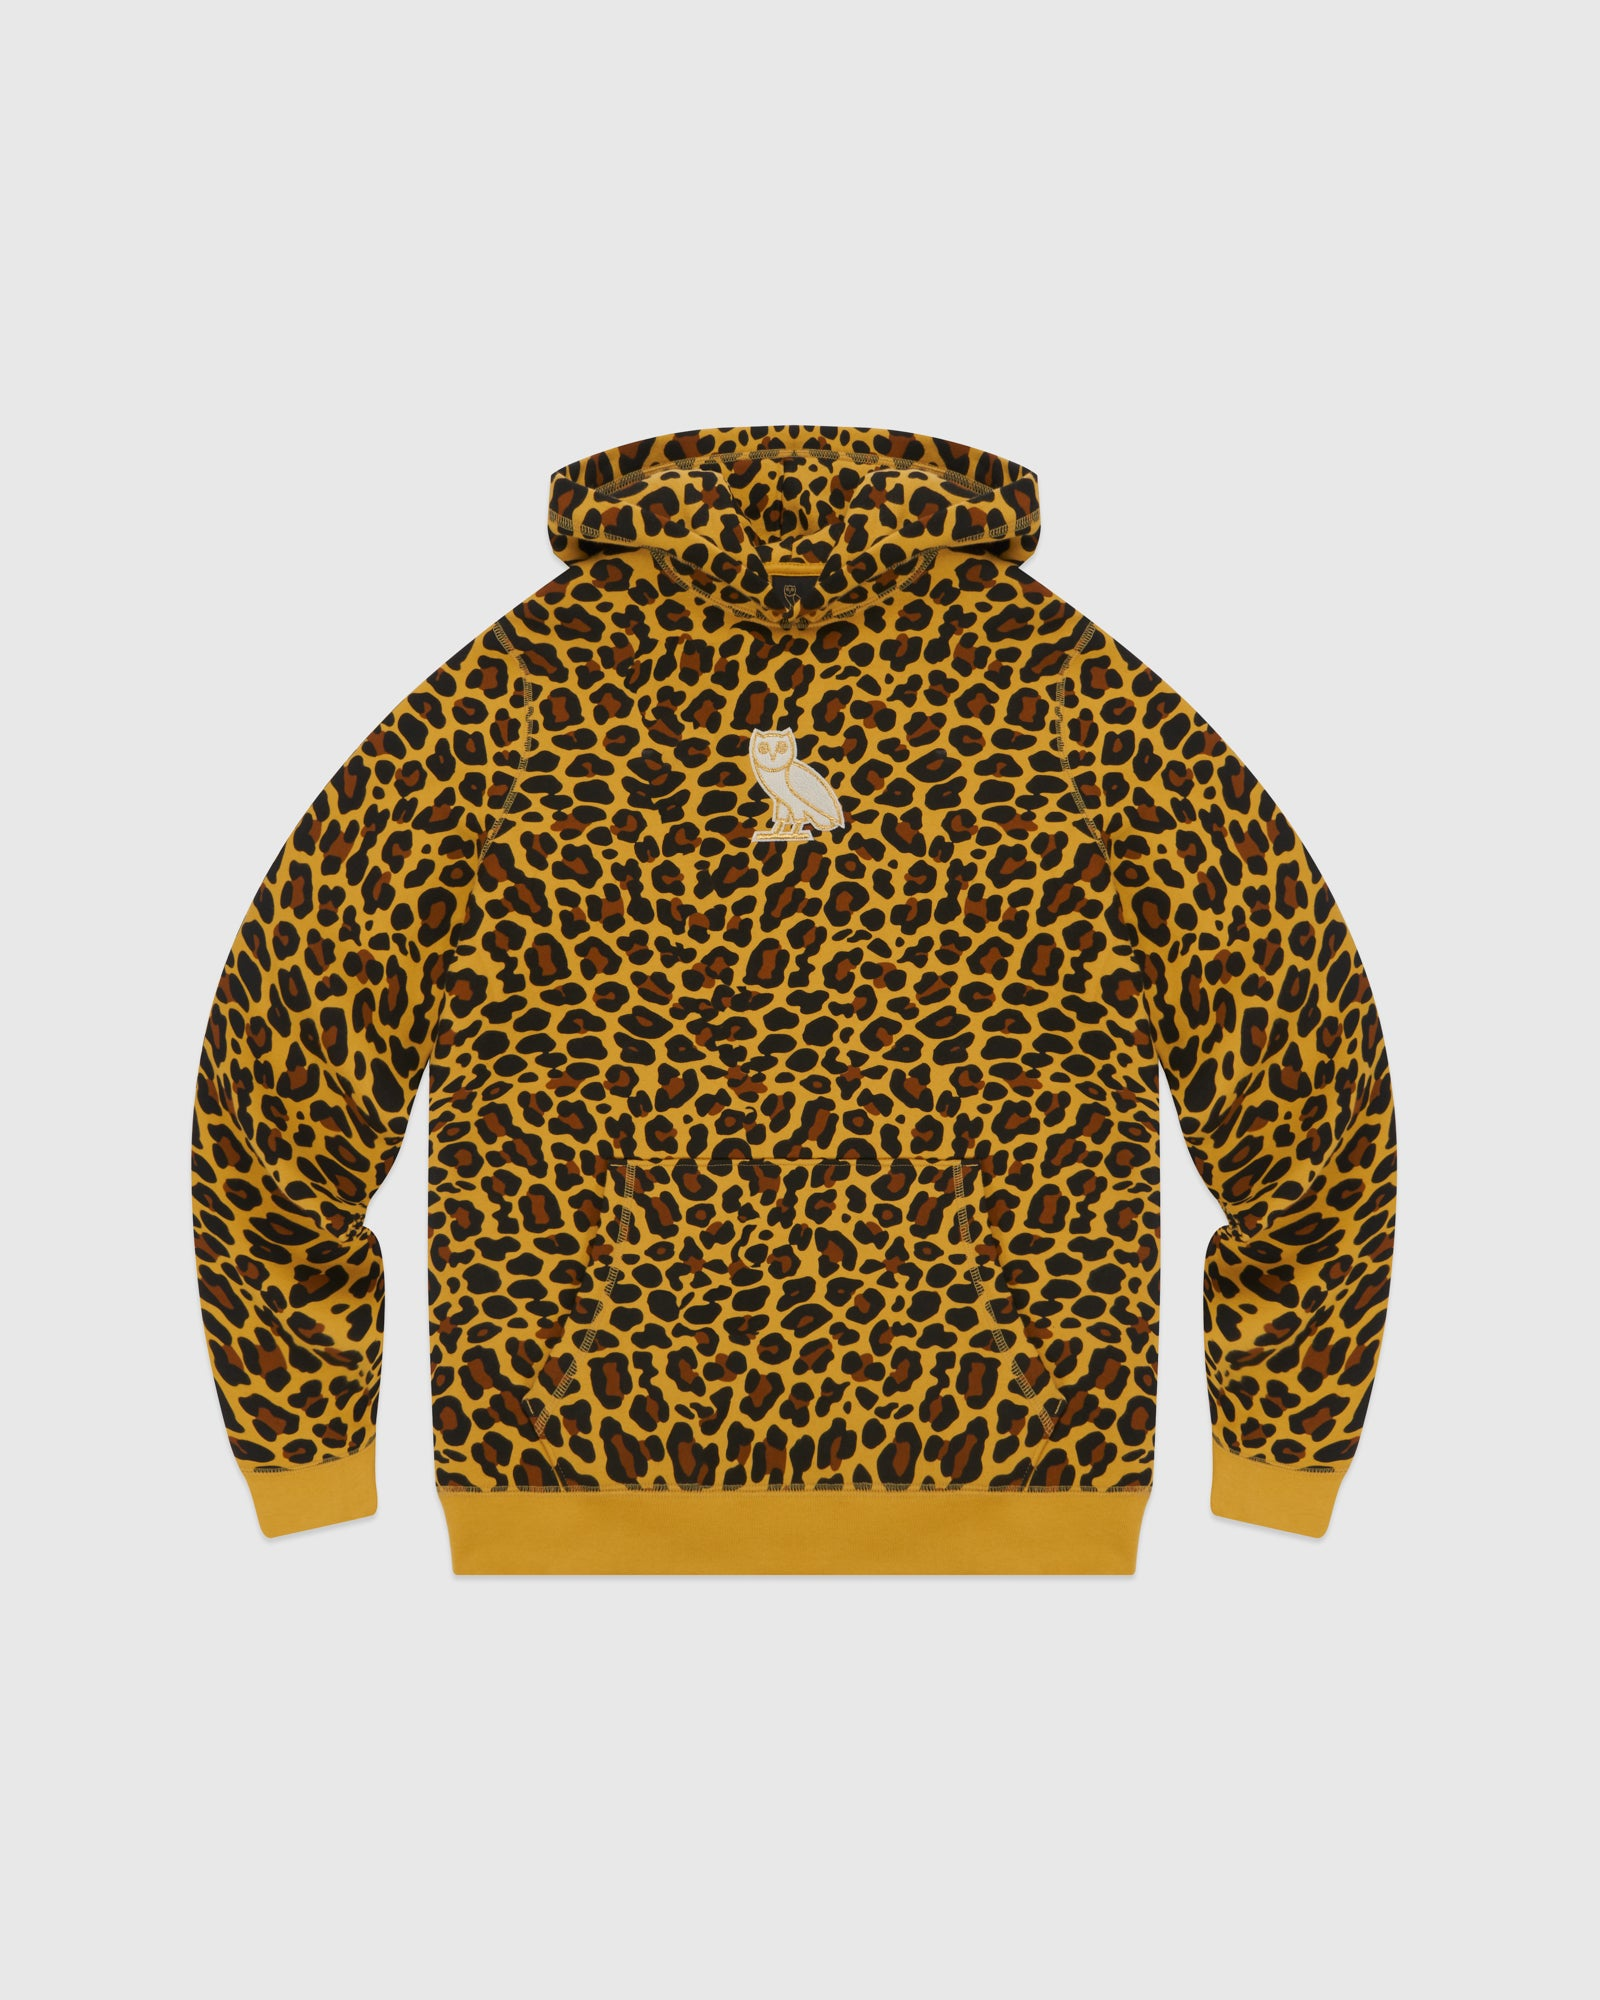 CLASSIC OWL HOODIE - LEOPARD IMAGE #1